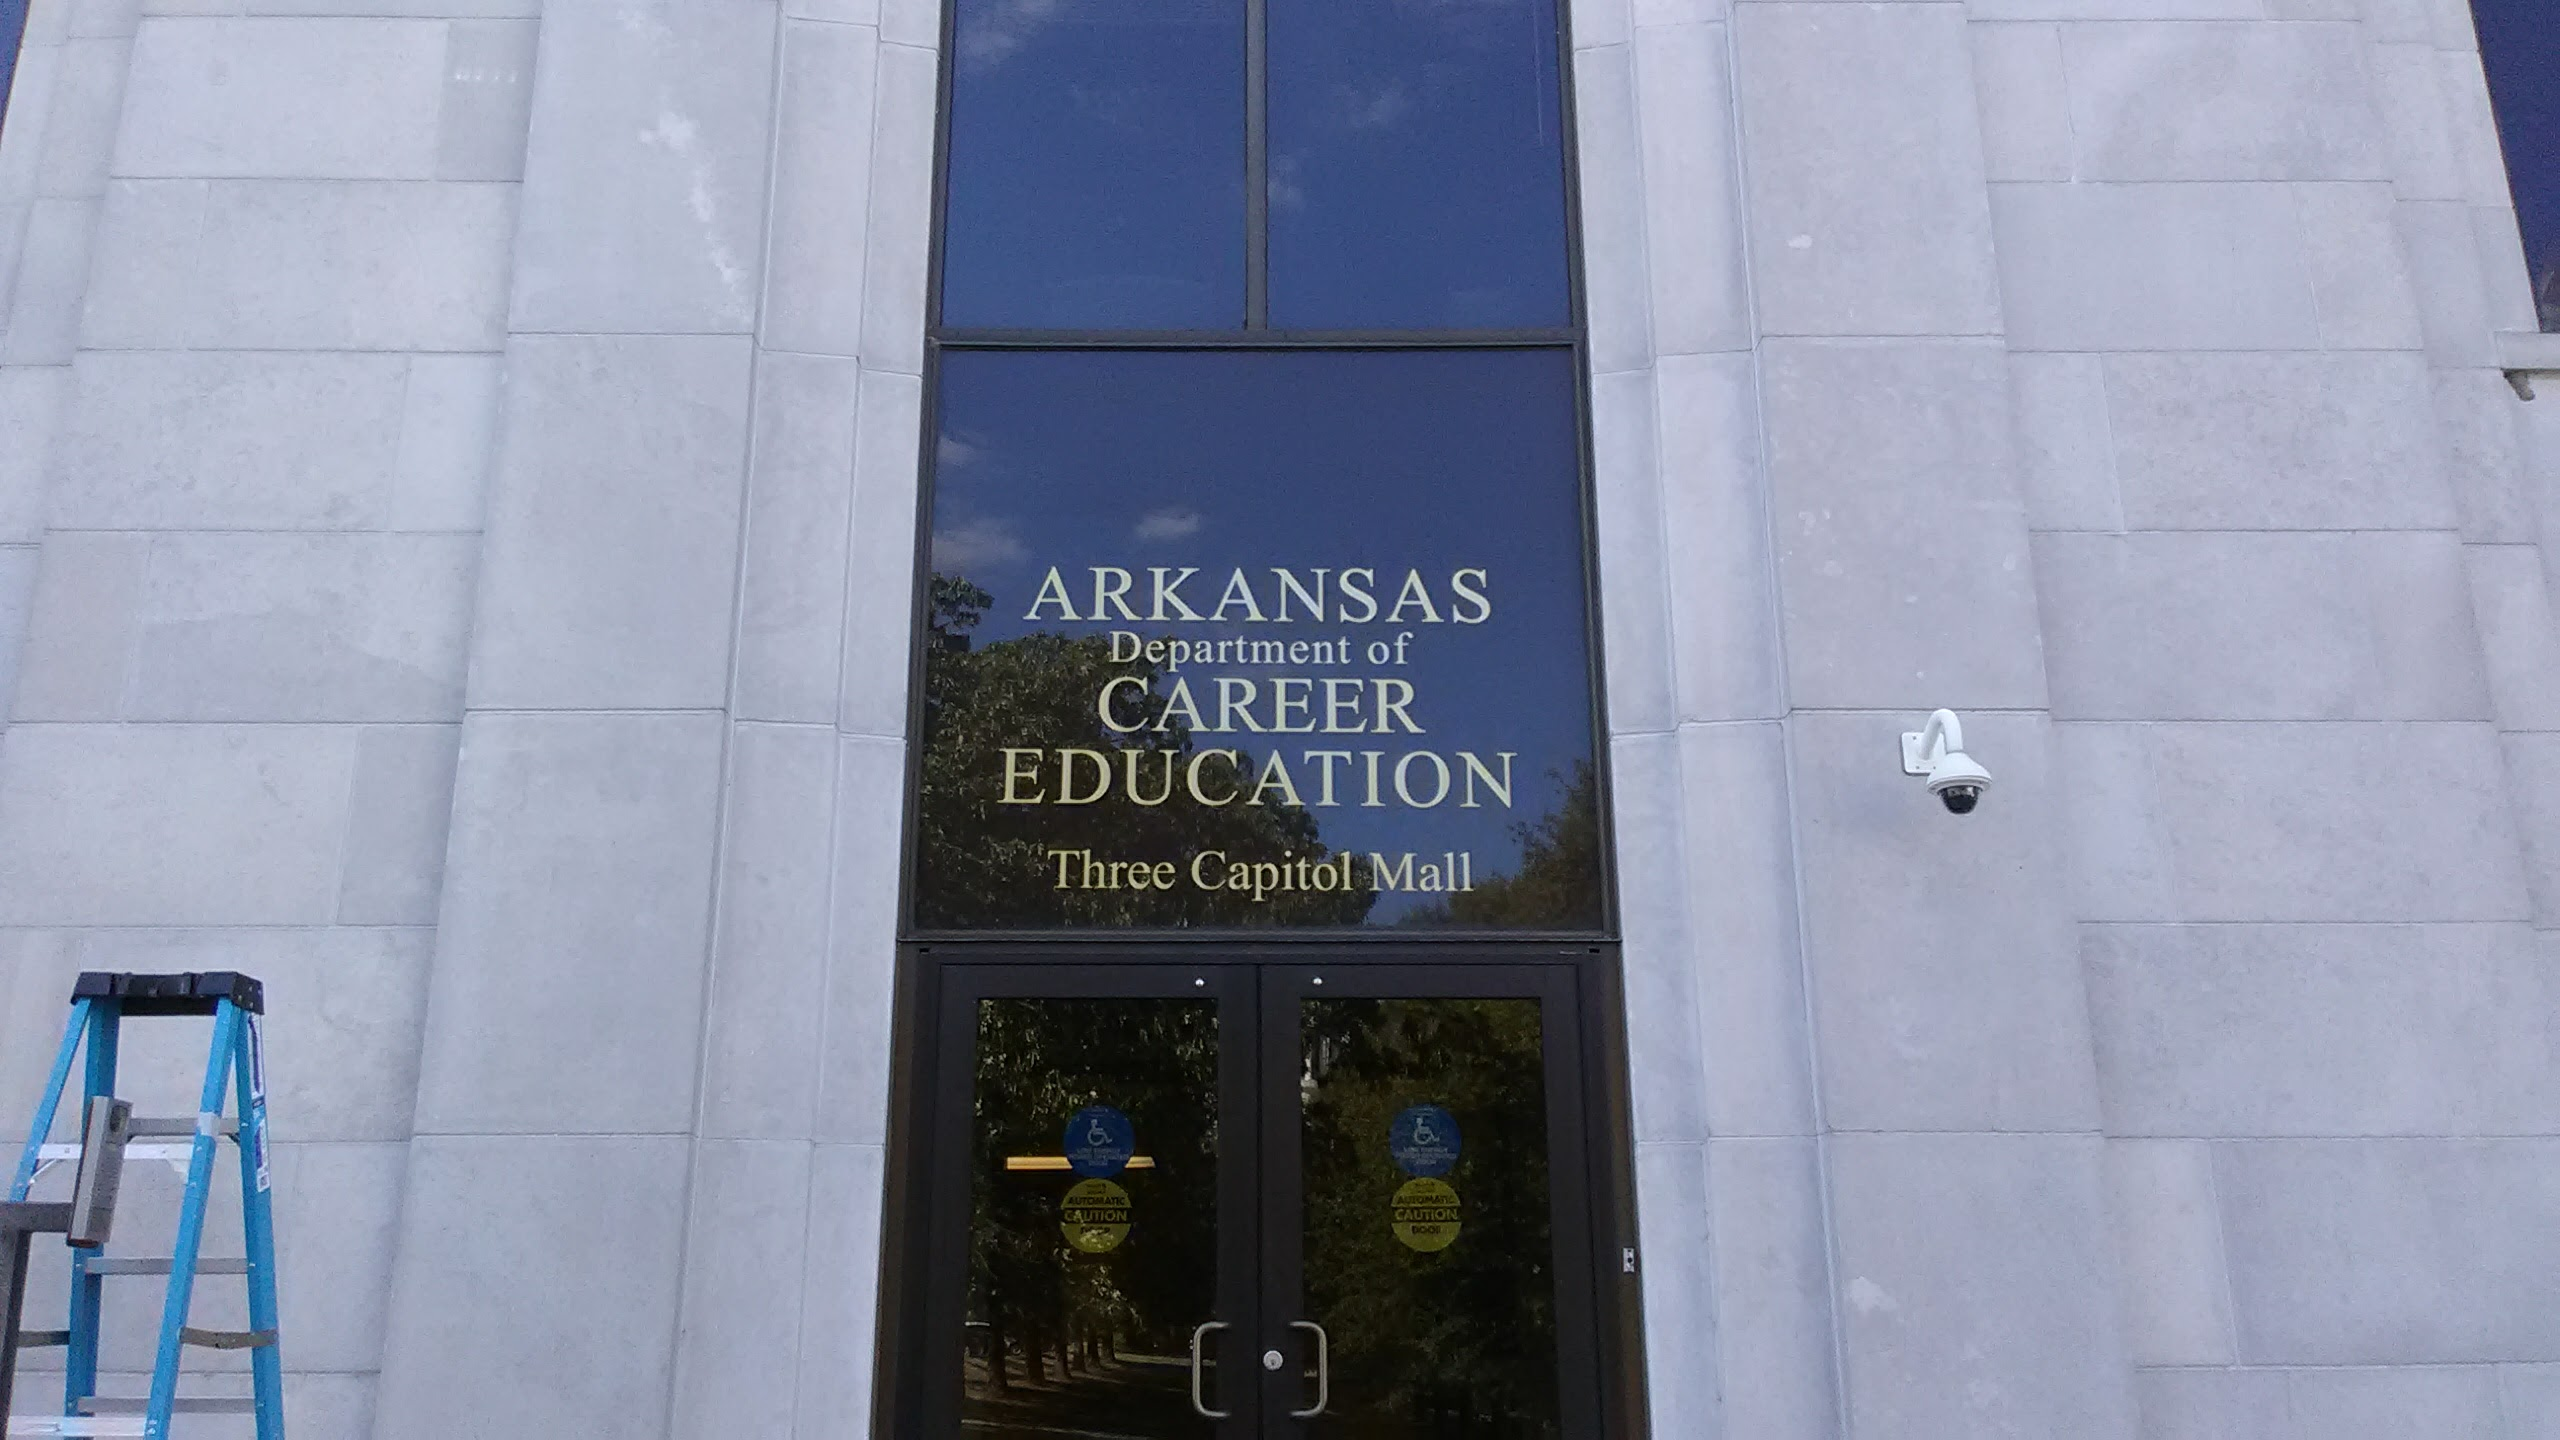 AR Department of Career Education